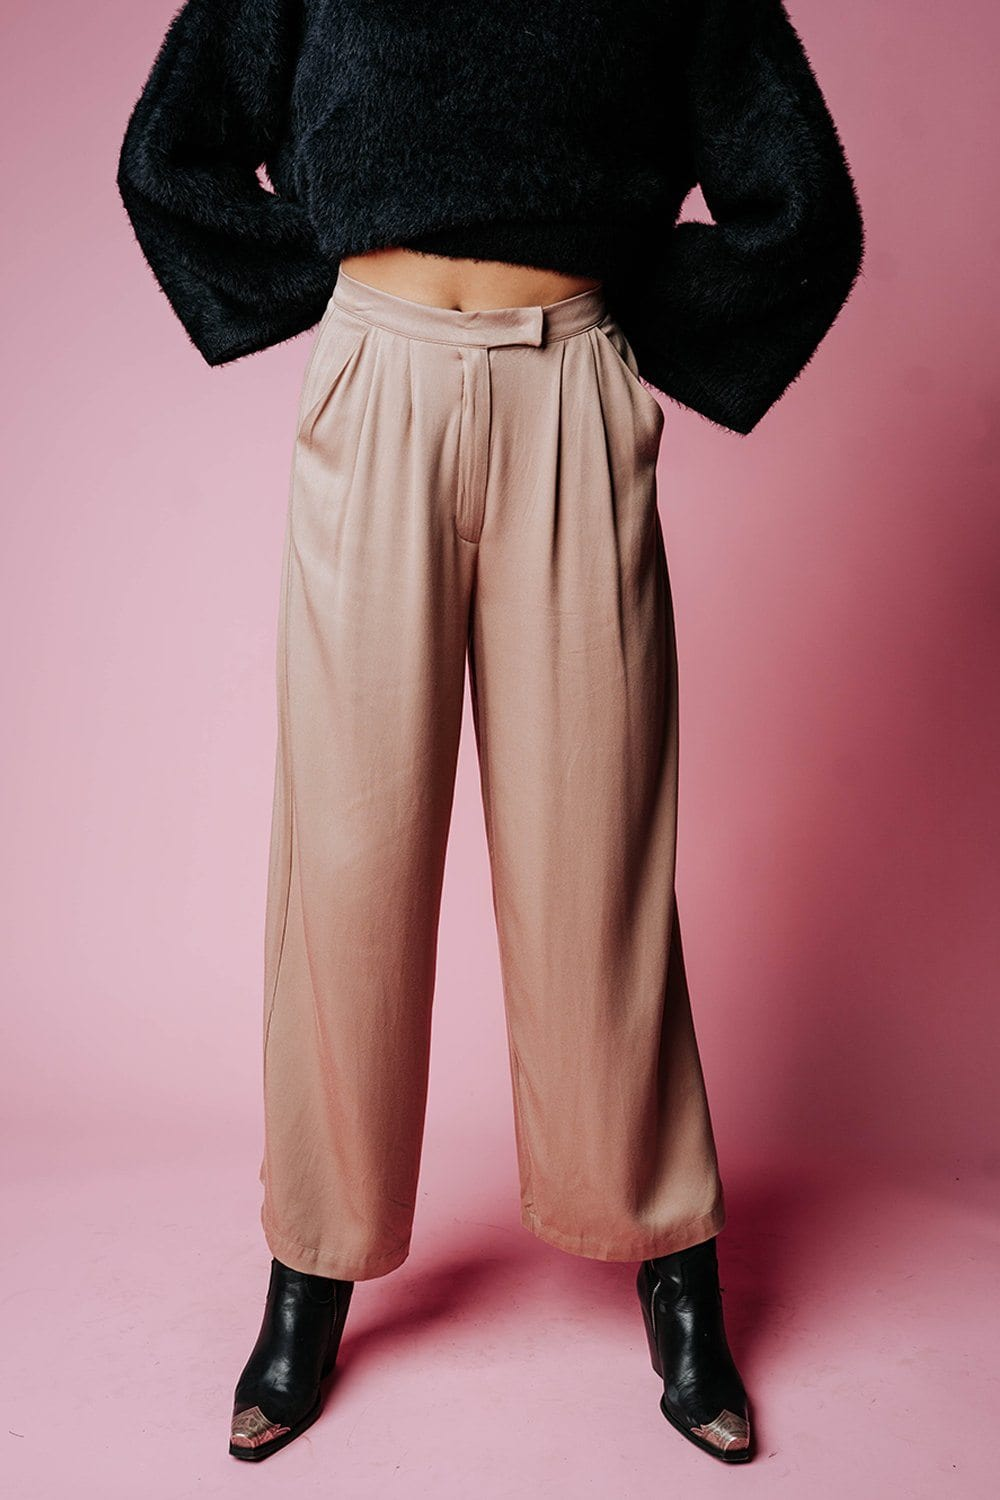 Welcome to New York Pant in Camel Bottom n/a Clad and Cloth